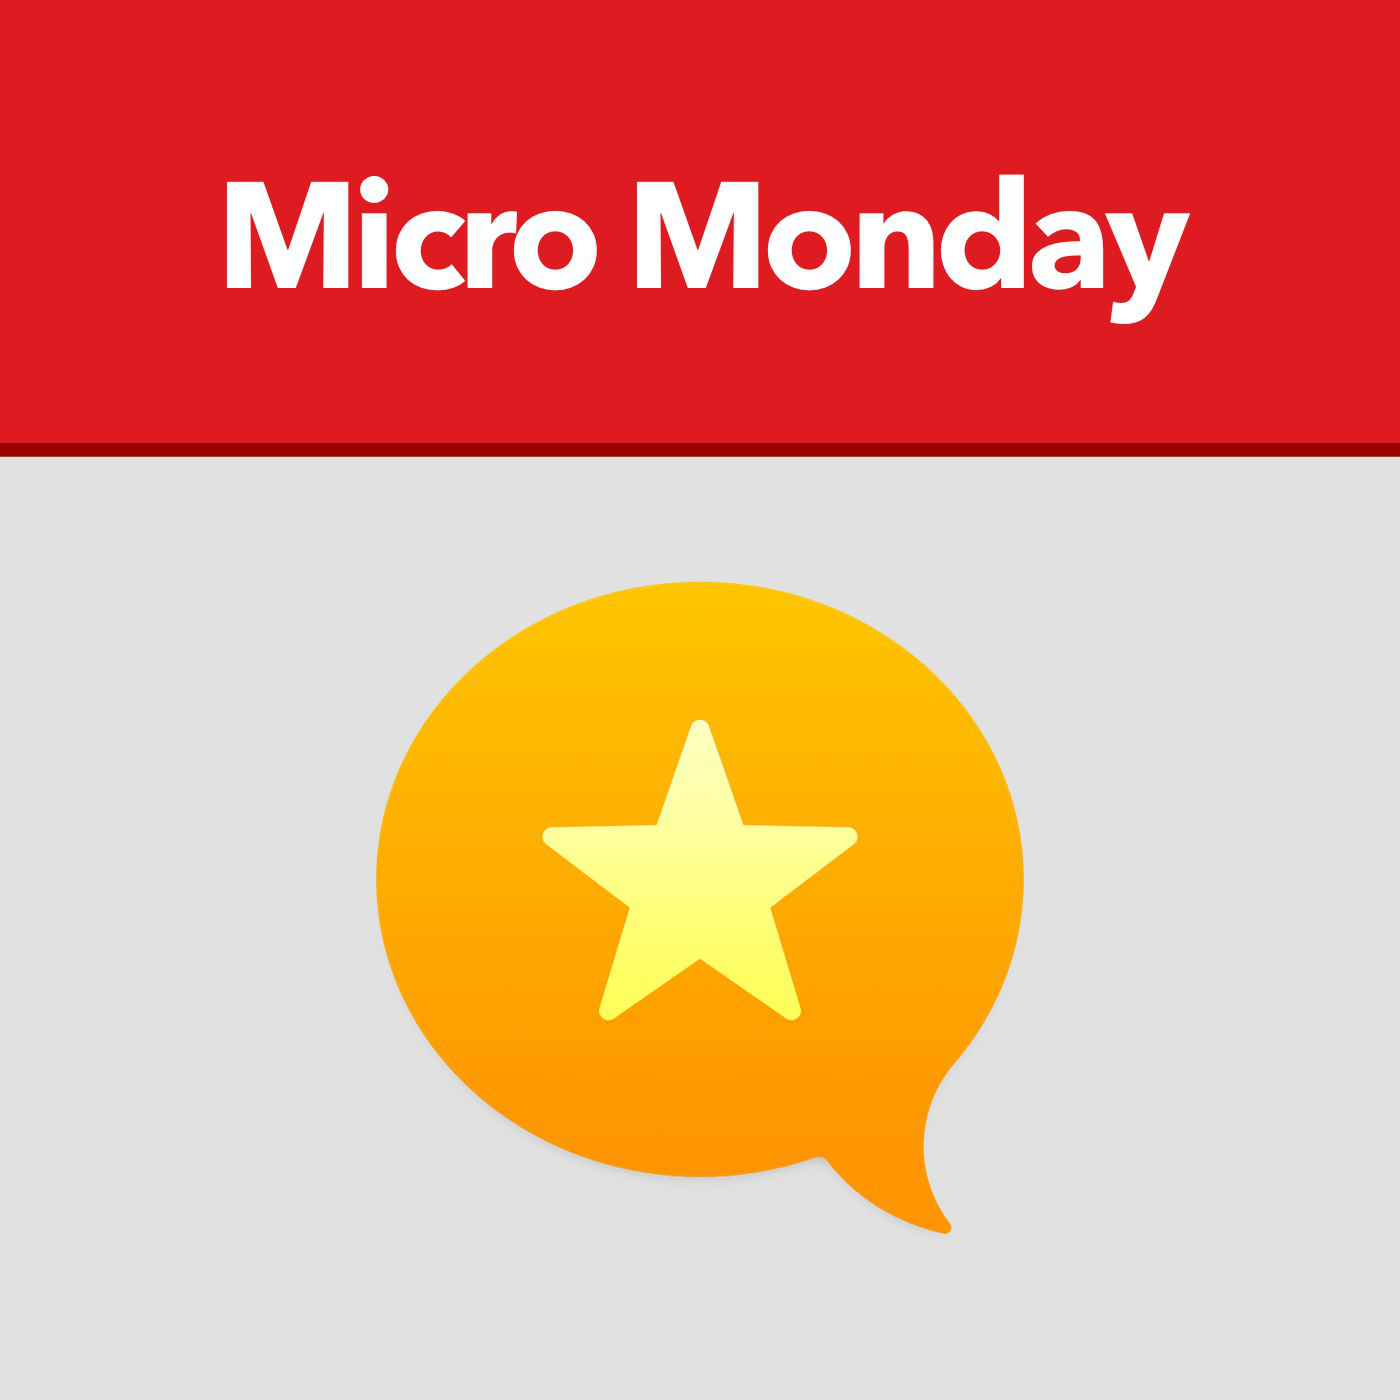 Micro Monday on Smash Notes